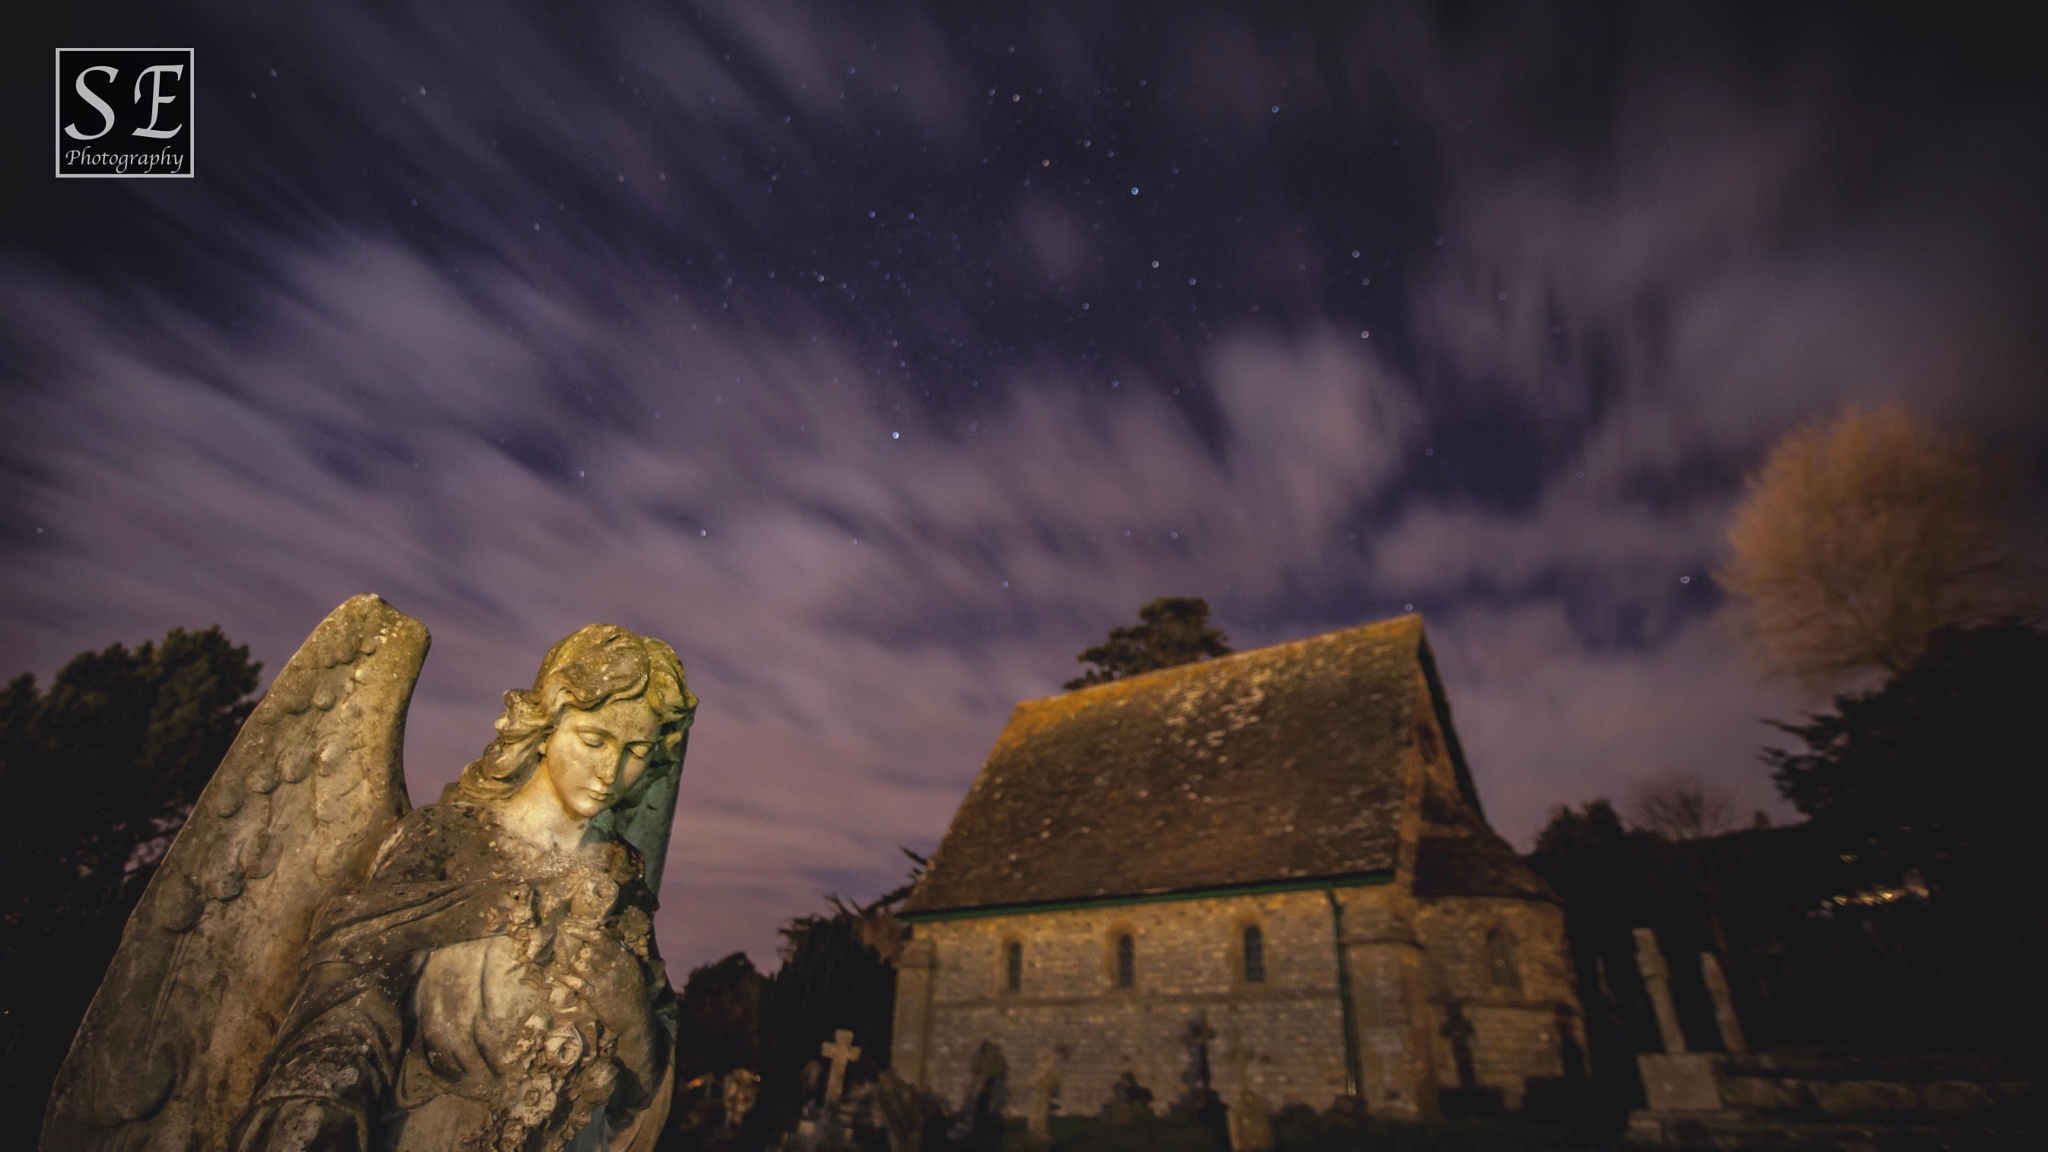 The sky at night by Simon Emmett Photography